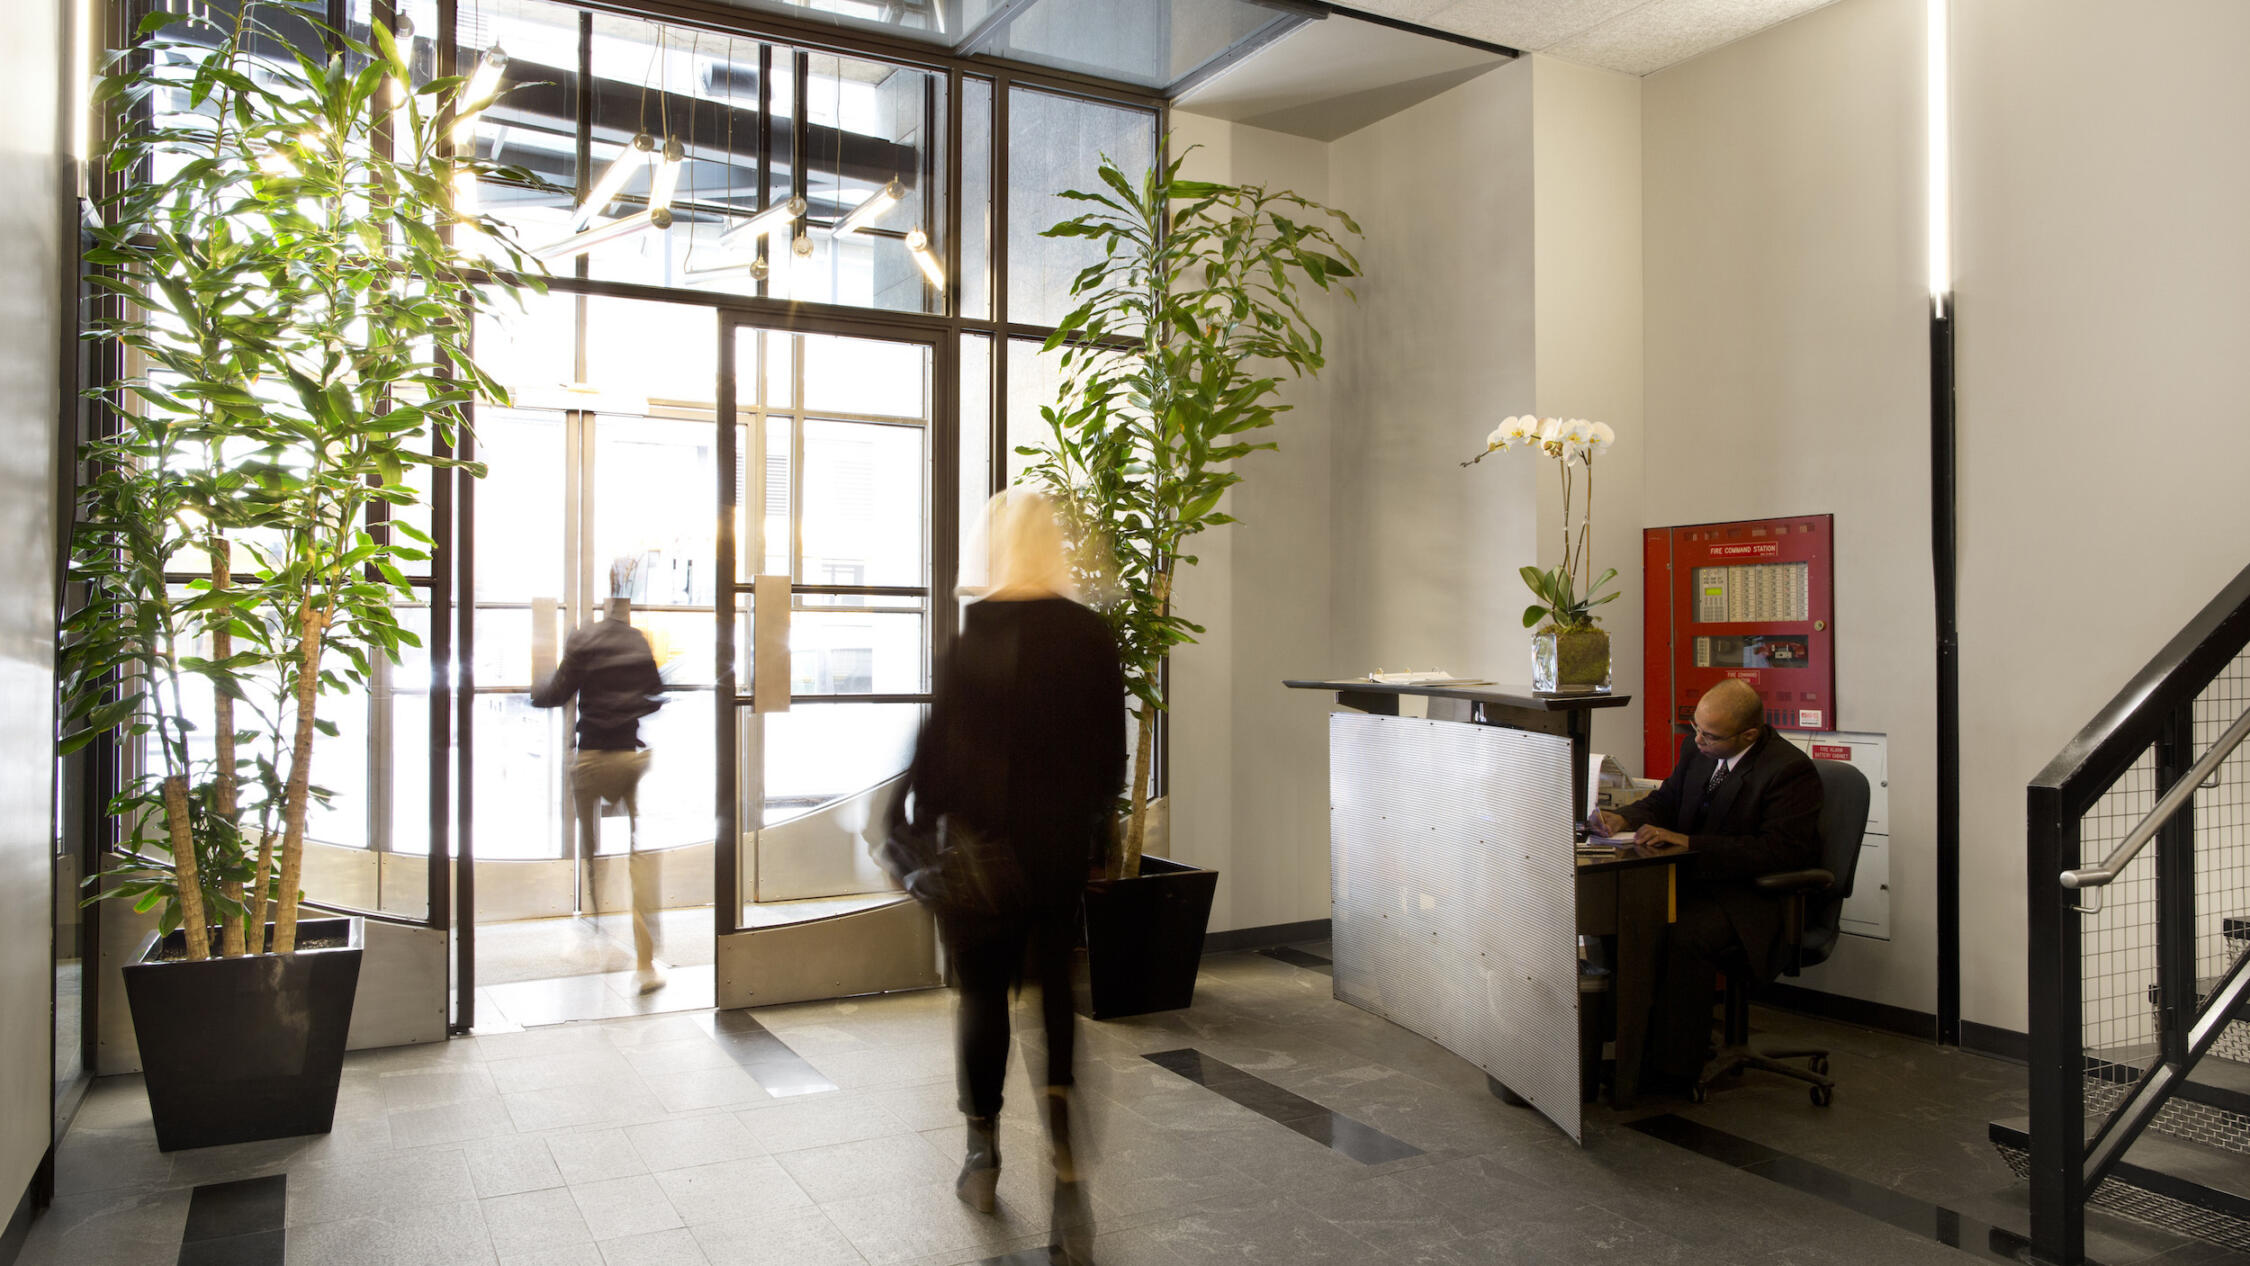 325 Hudson lobby with visitors walking through door and concierge at desk